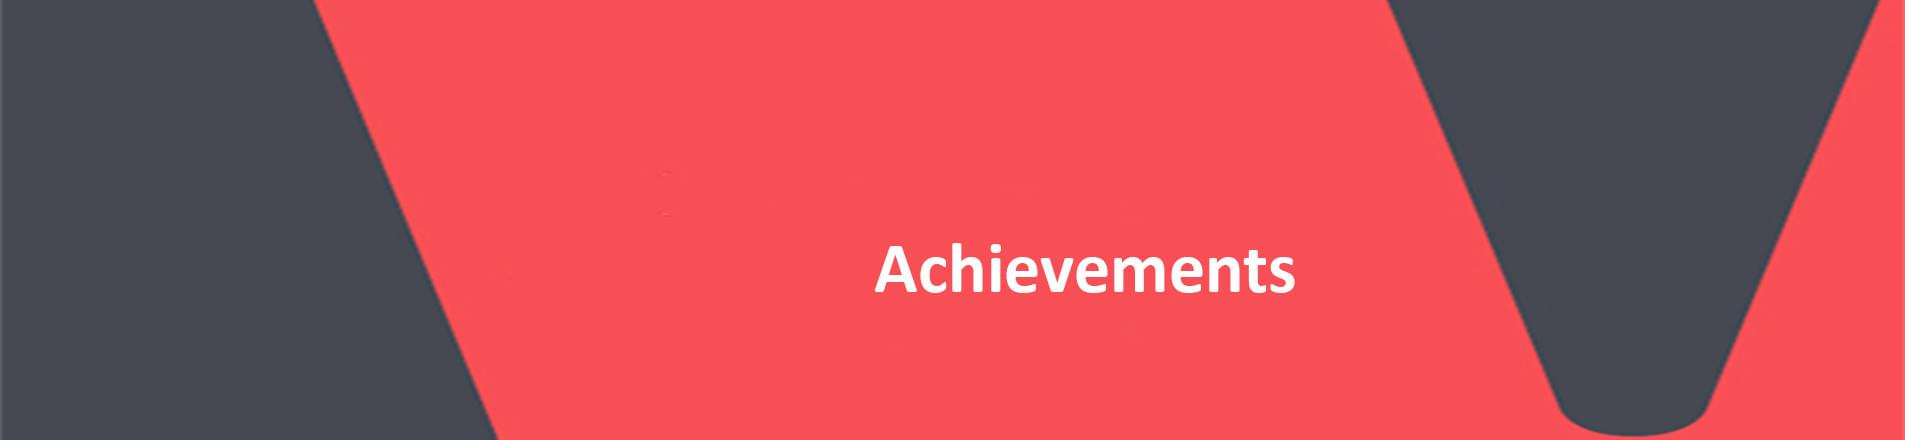 Achievements on red VERCIDA branded background